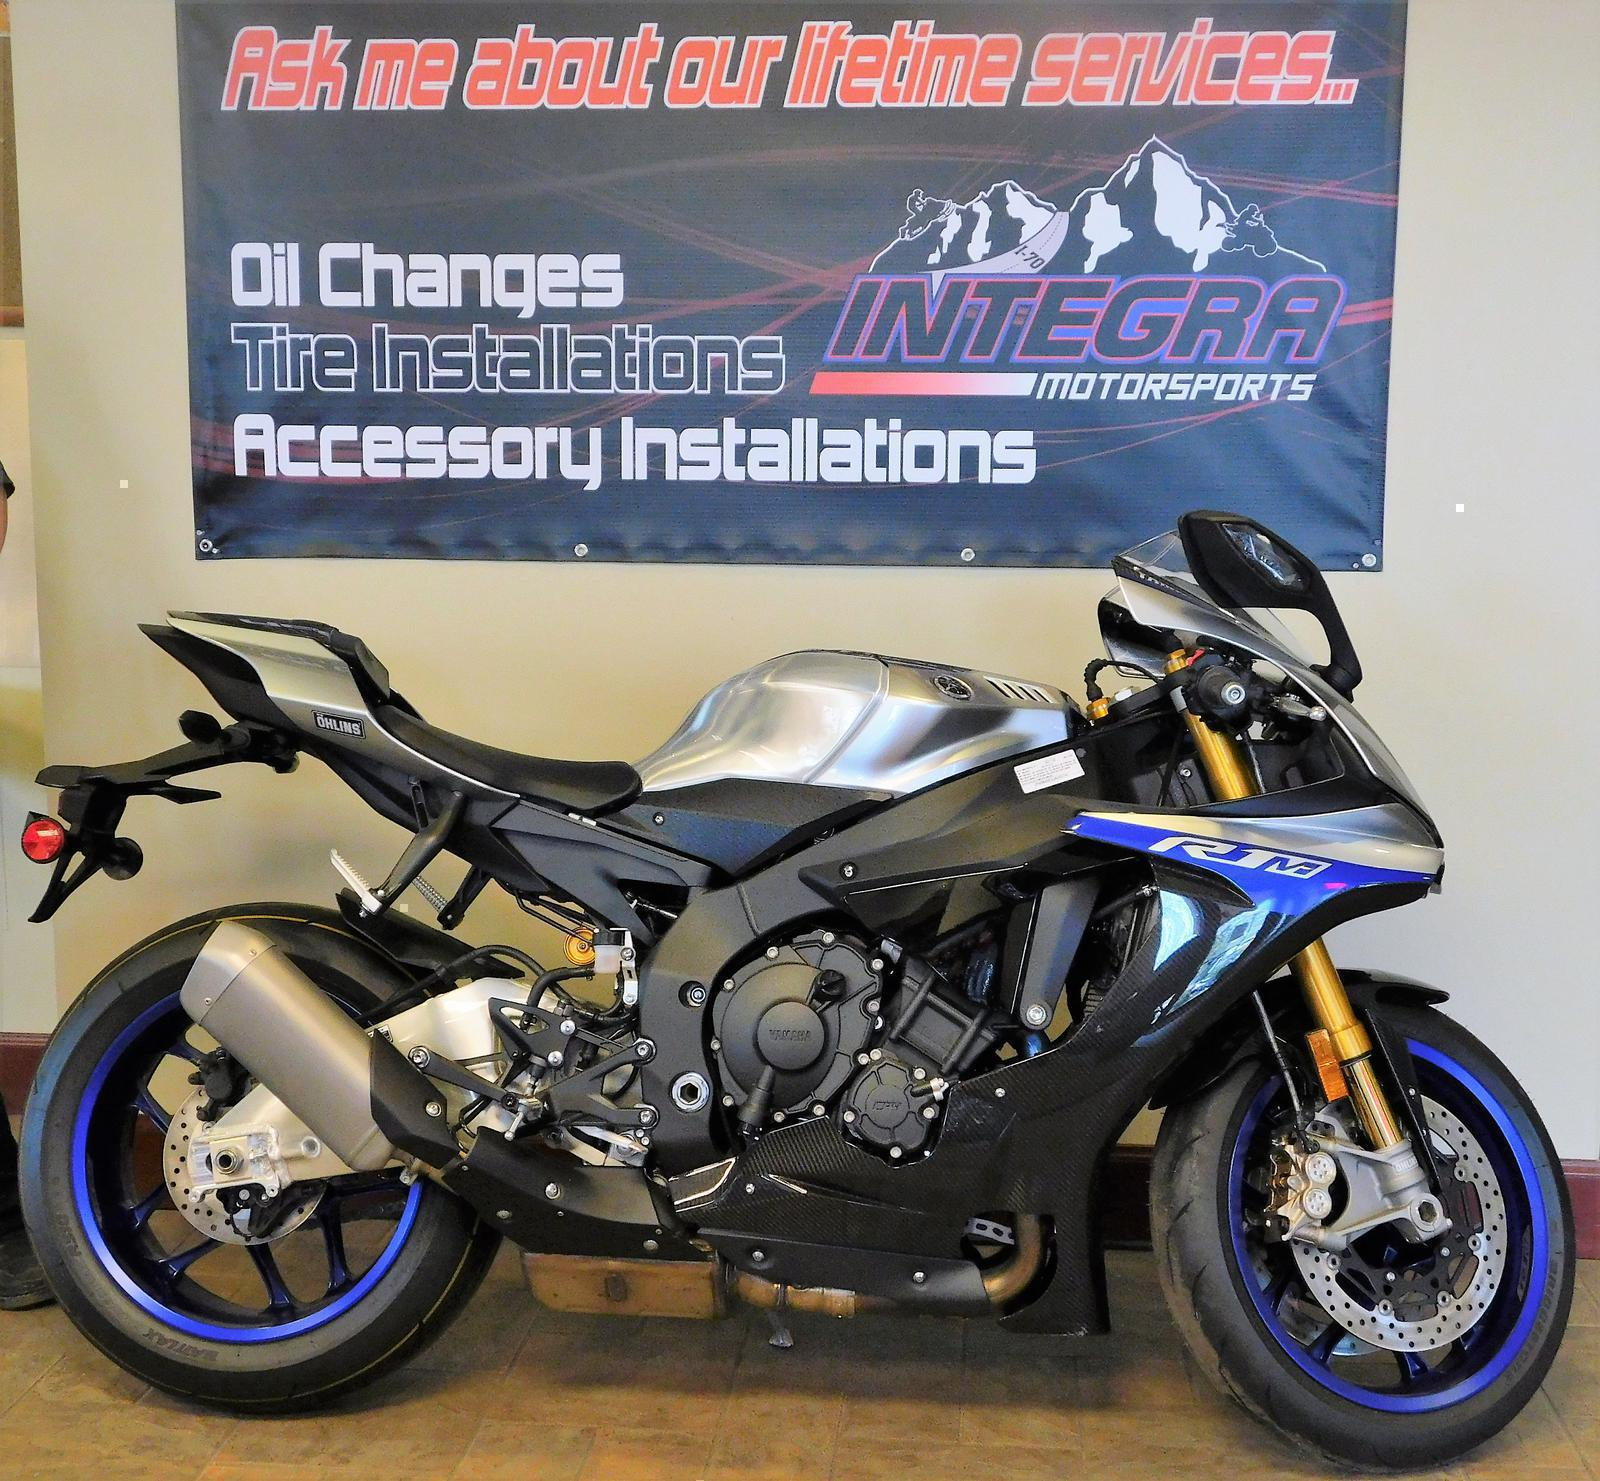 Inventory from Yamaha Integra Motorsports Glenwood Springs